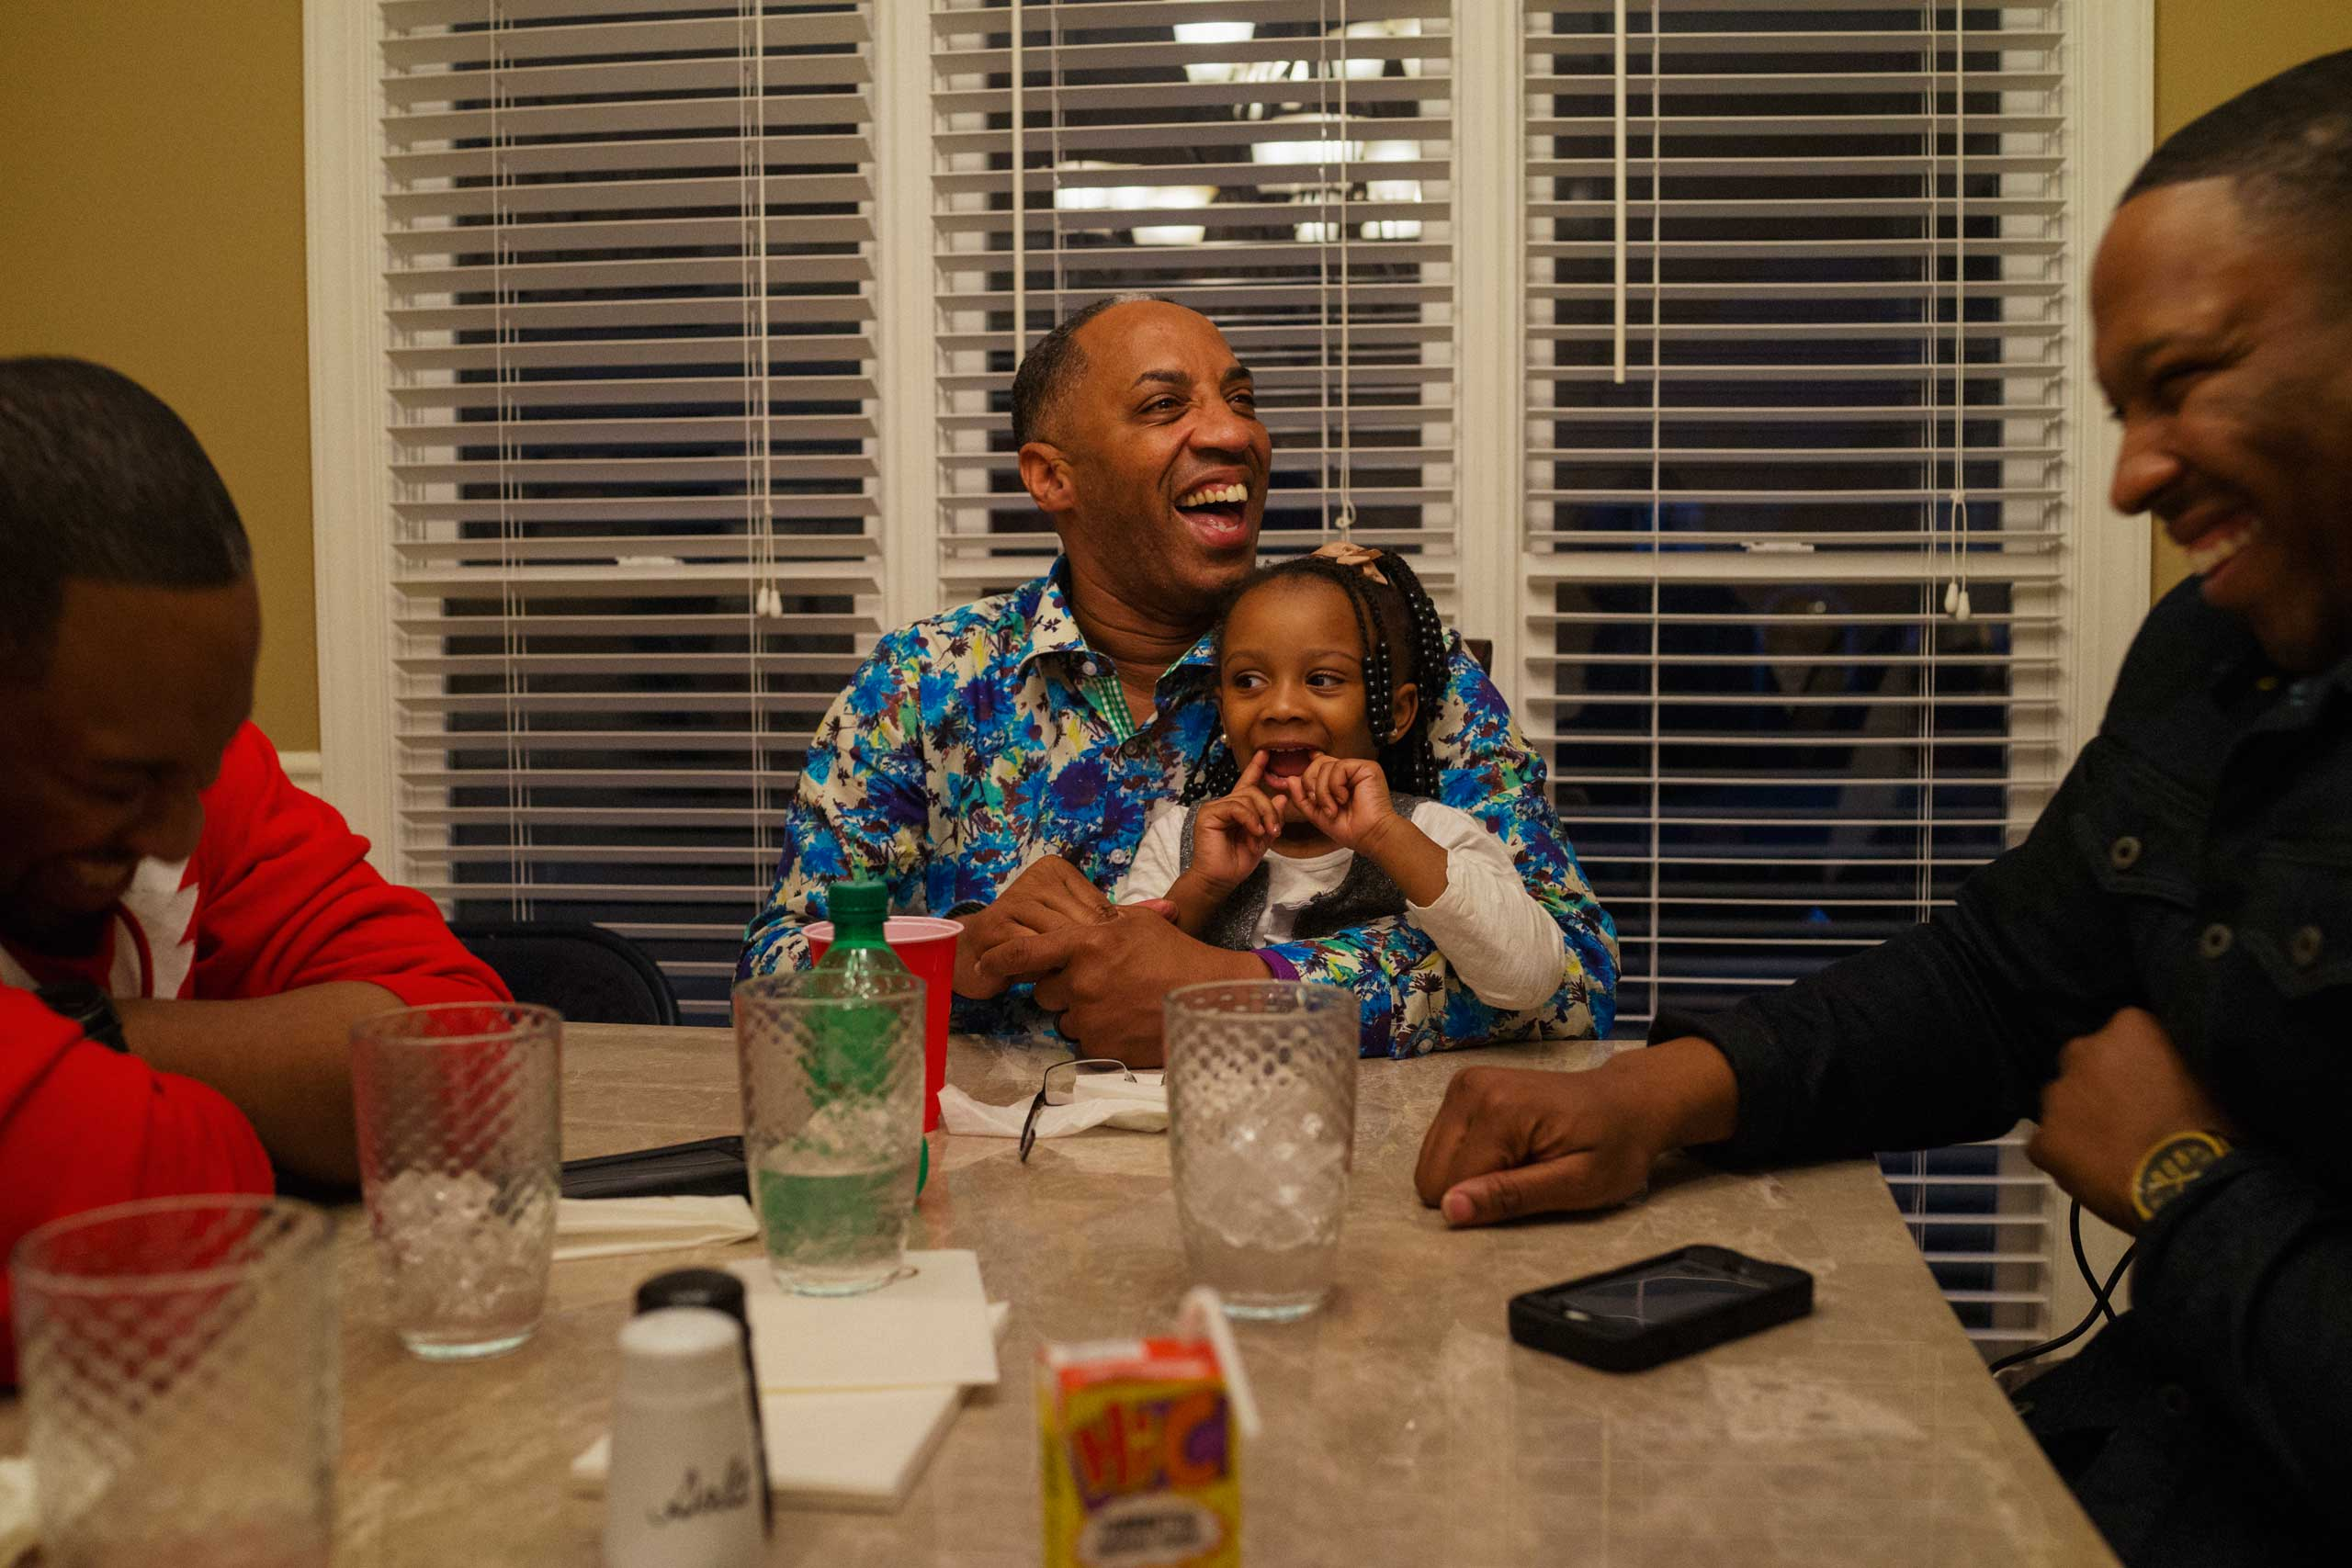 (L-R) Michael McClure Jr., Michael McClure Sr. and his granddaughter Brooklyn, and Darius McClure laugh during a family dinner at the home of Rev. Michael McClure Sr., in Birmingham, Ala. on March 22, 2015.